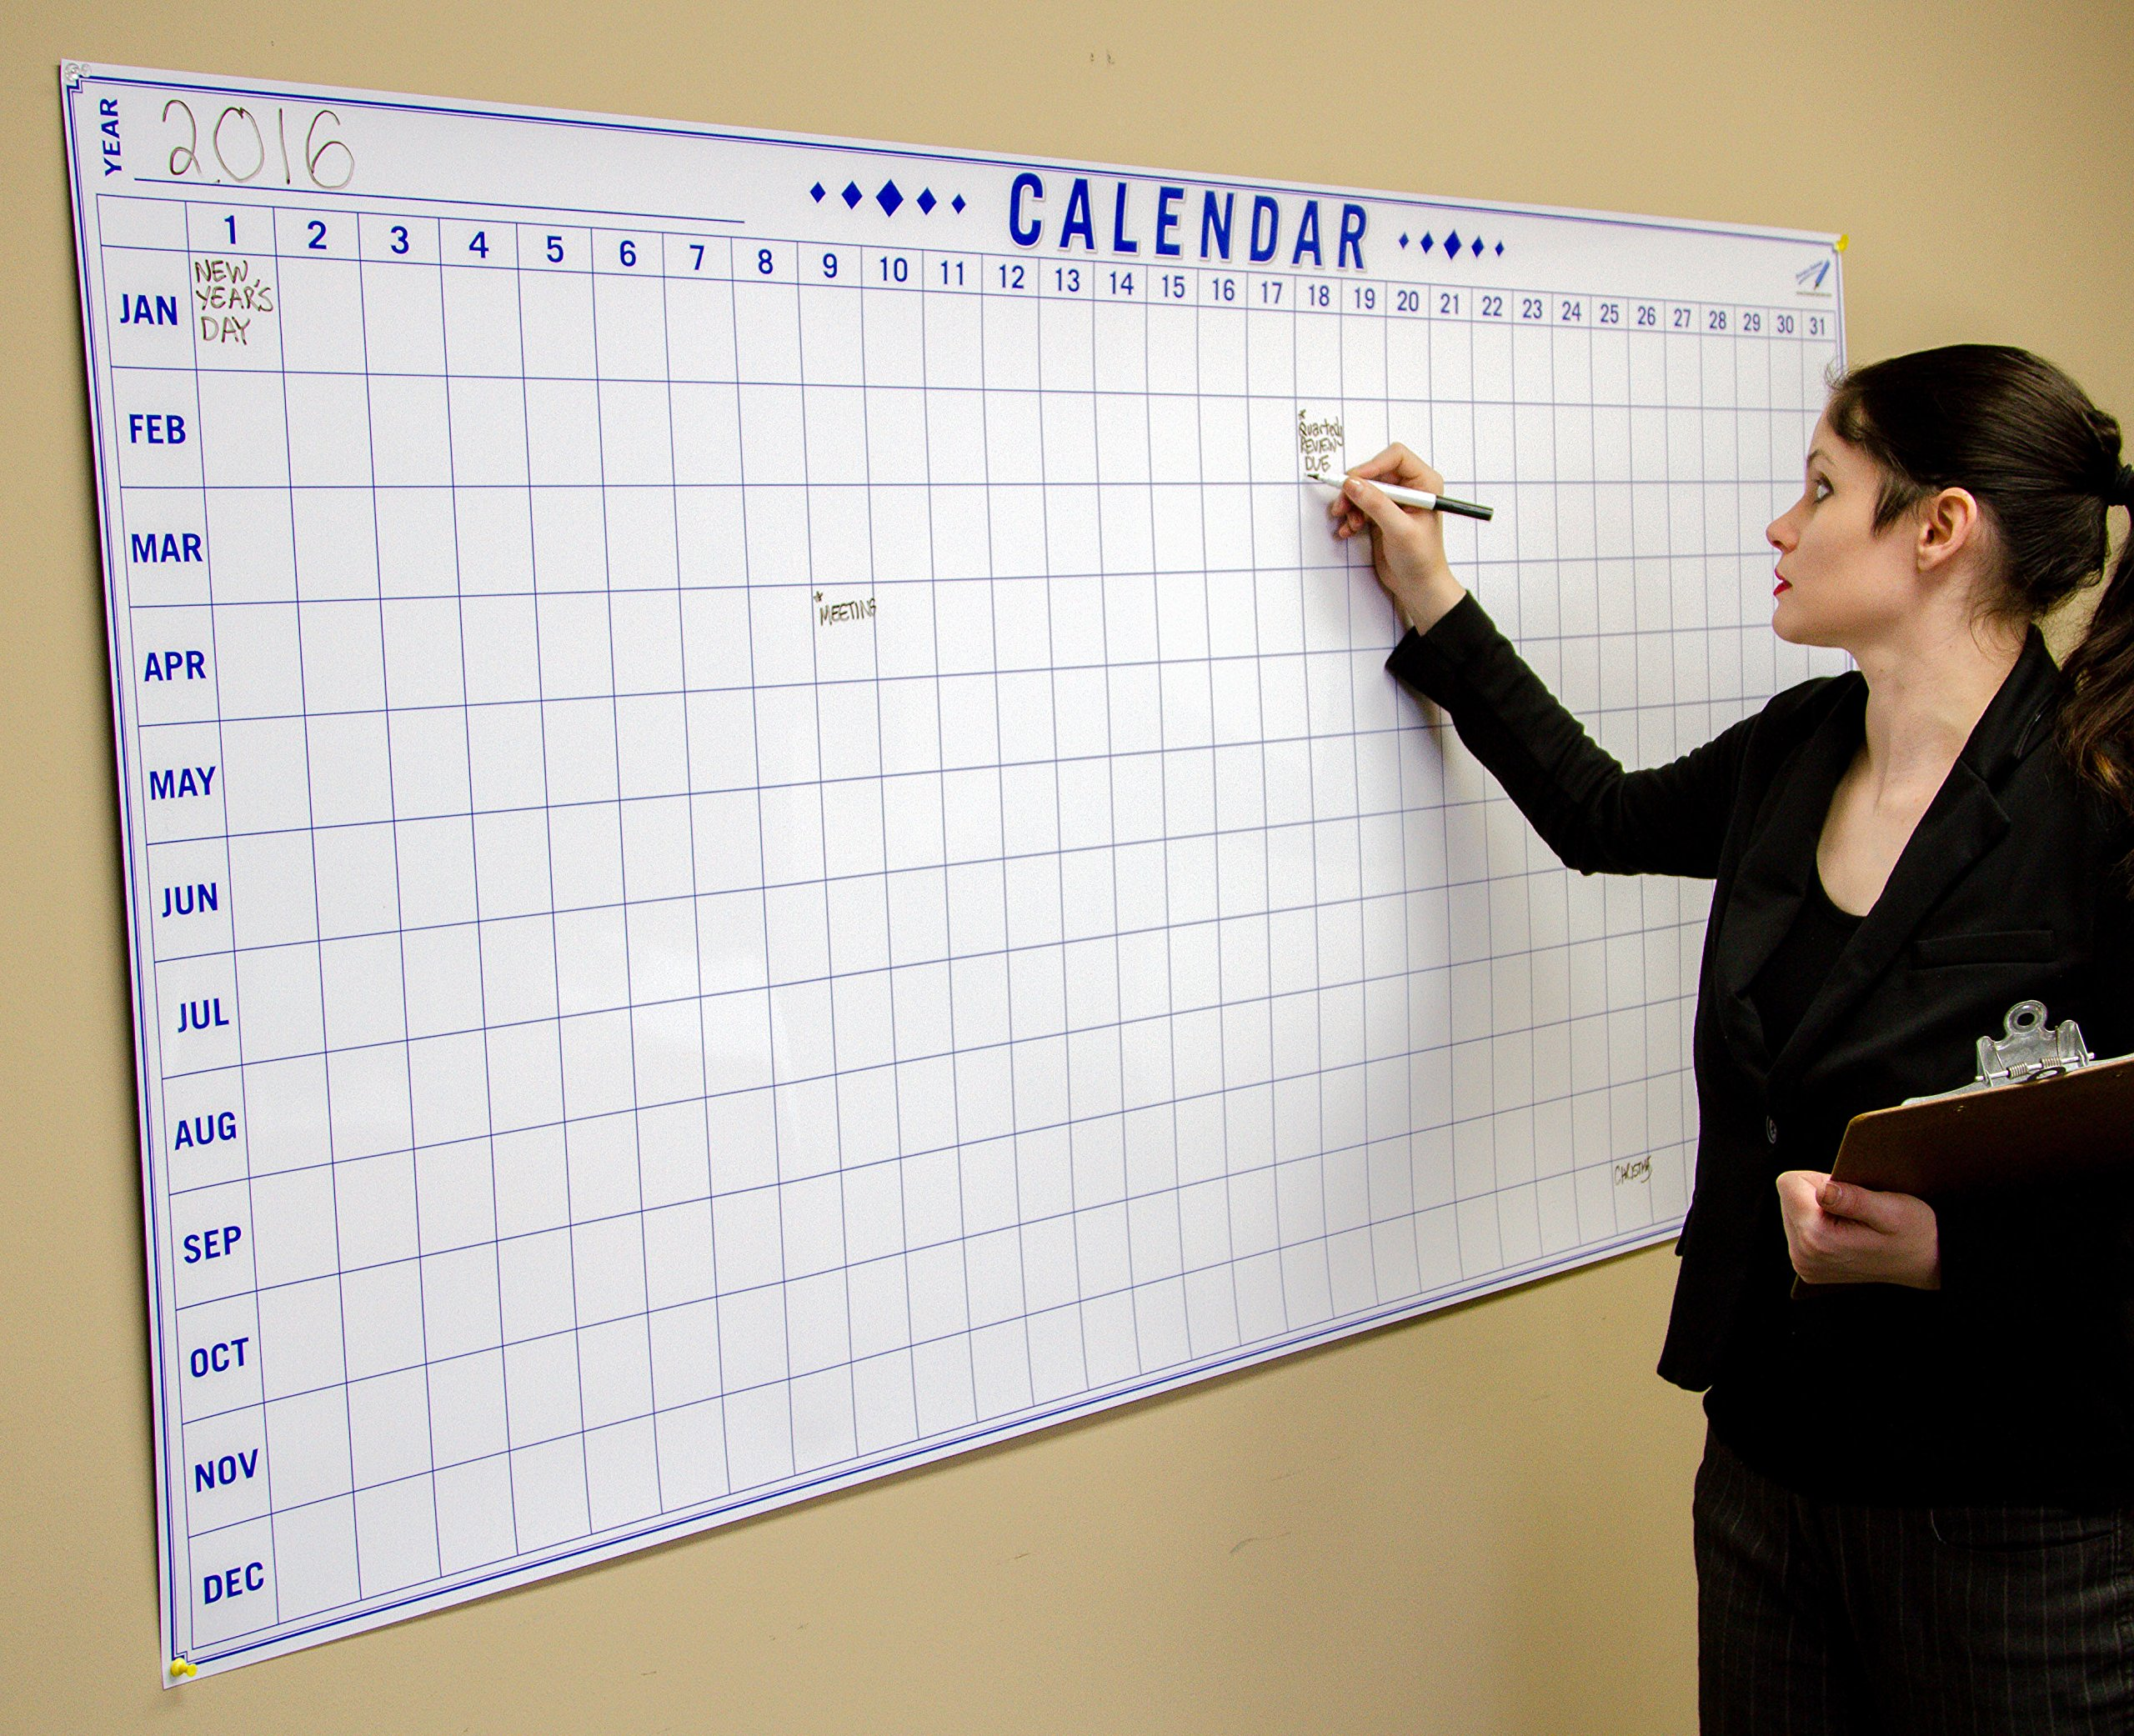 Dry Erase Julian Date Calendar - 36 x 72 Large Dry Erase Wall Calendar - Large Wall Calendar - Reusable Annual Calendar - Wall Planner with Vertical Dates and Horizontal Months by Oversize Planner by ABI Digital Solutions (Image #3)